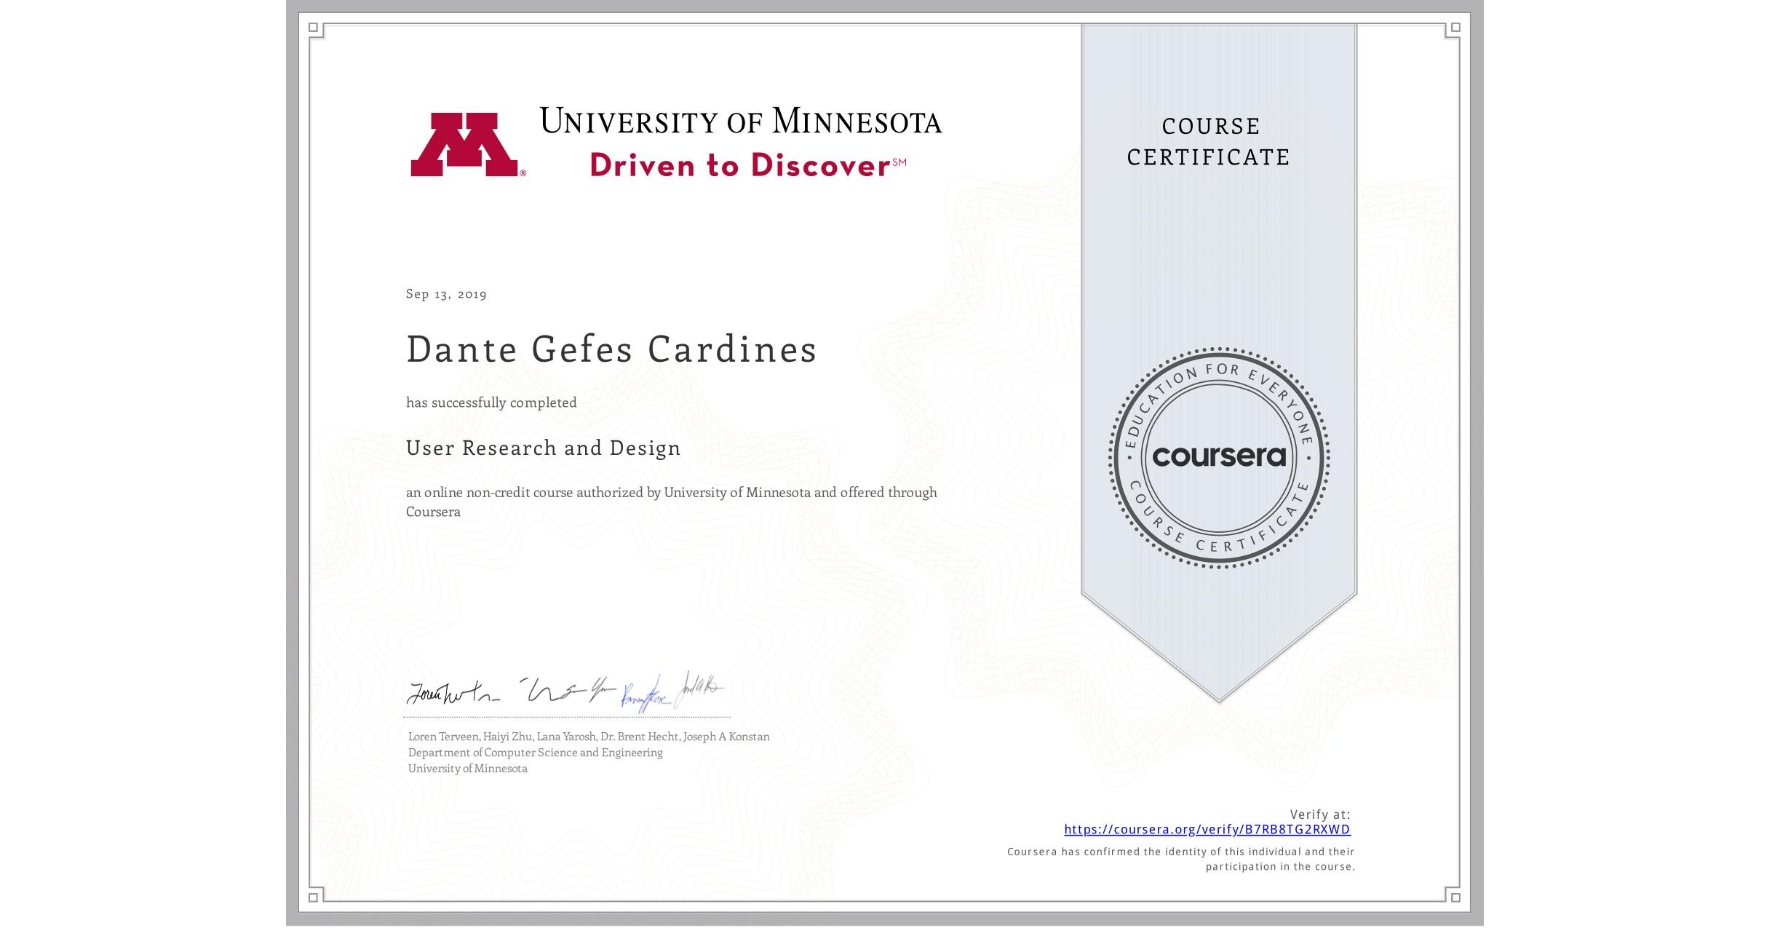 View certificate for Dante Gefes Cardines, User Research and Design, an online non-credit course authorized by University of Minnesota and offered through Coursera